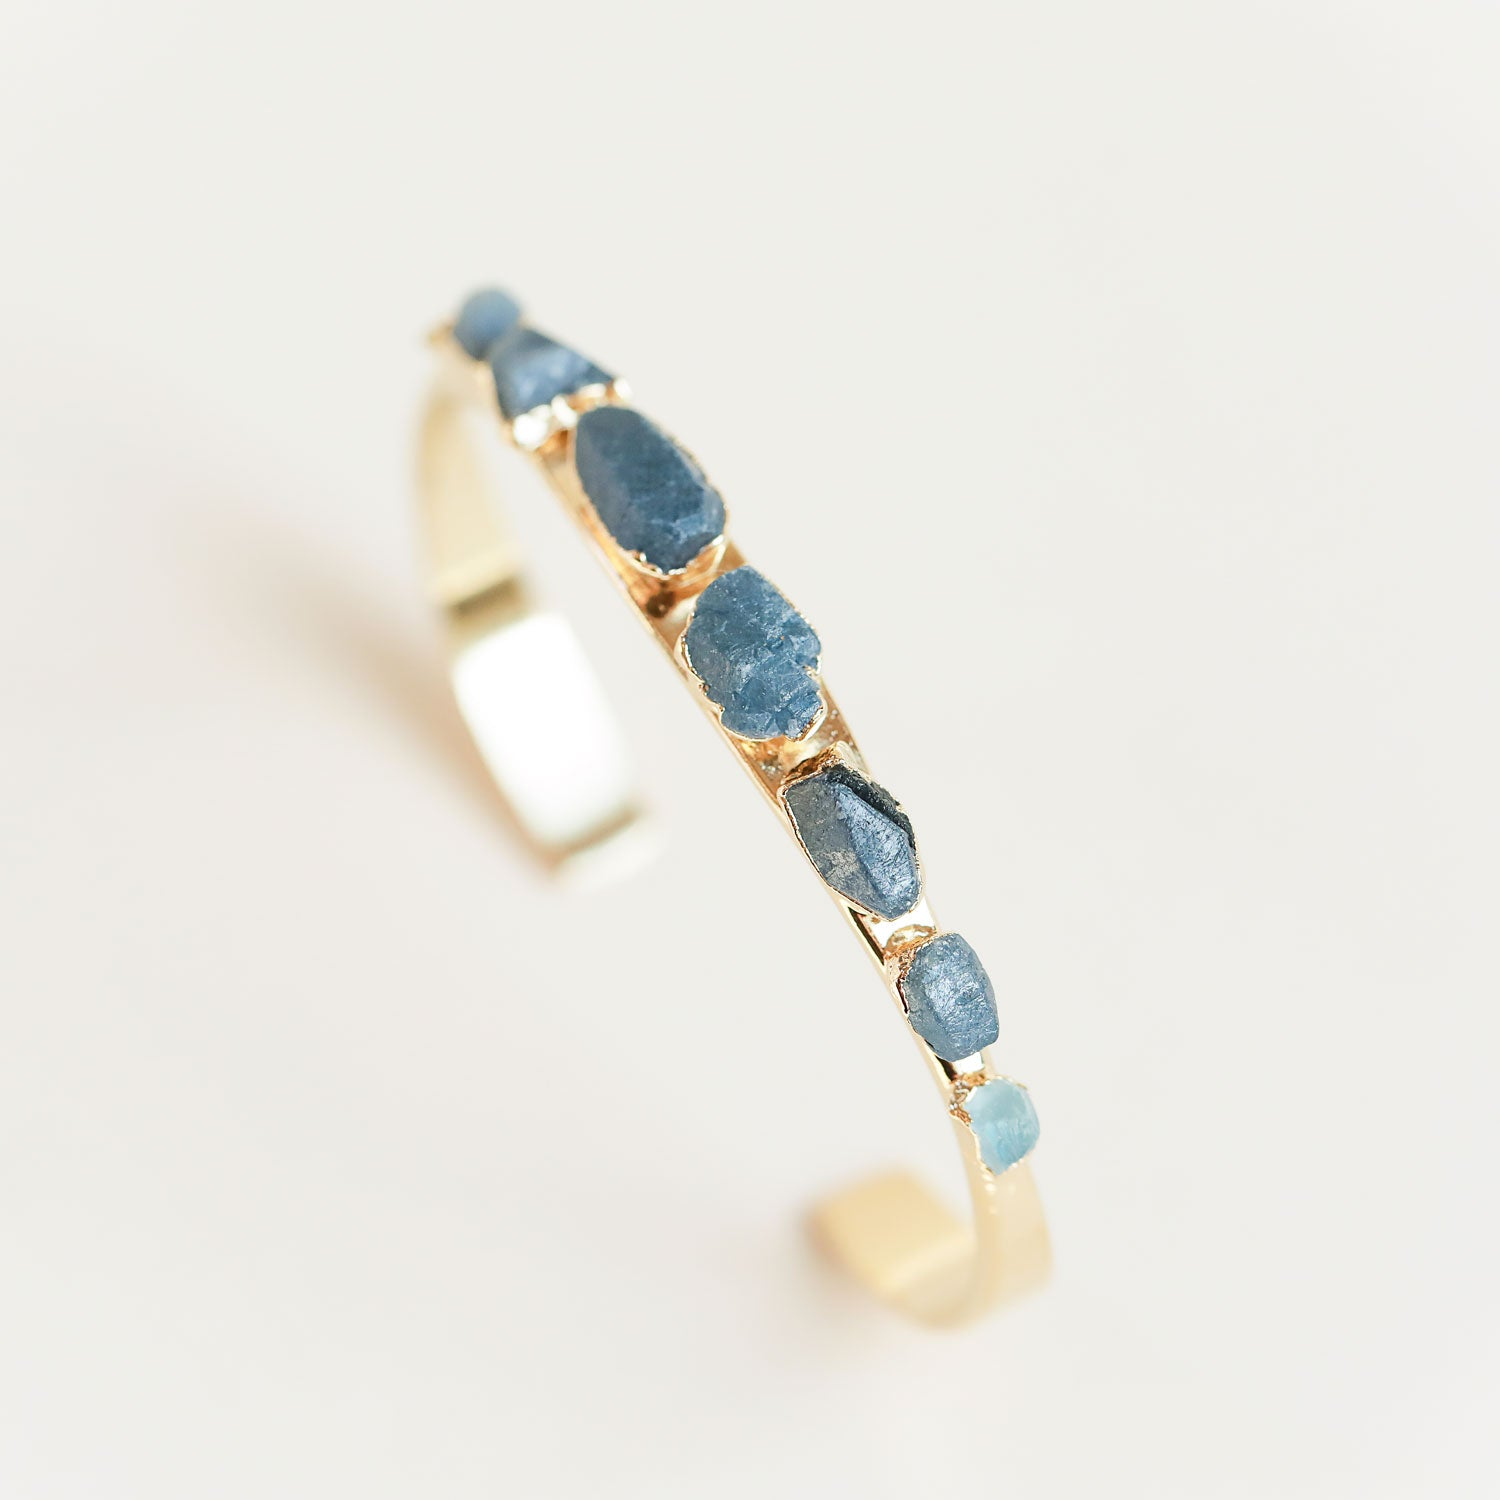 Raw Sapphire Cuff with Aquamarine Accent Stones by Dani Barbe